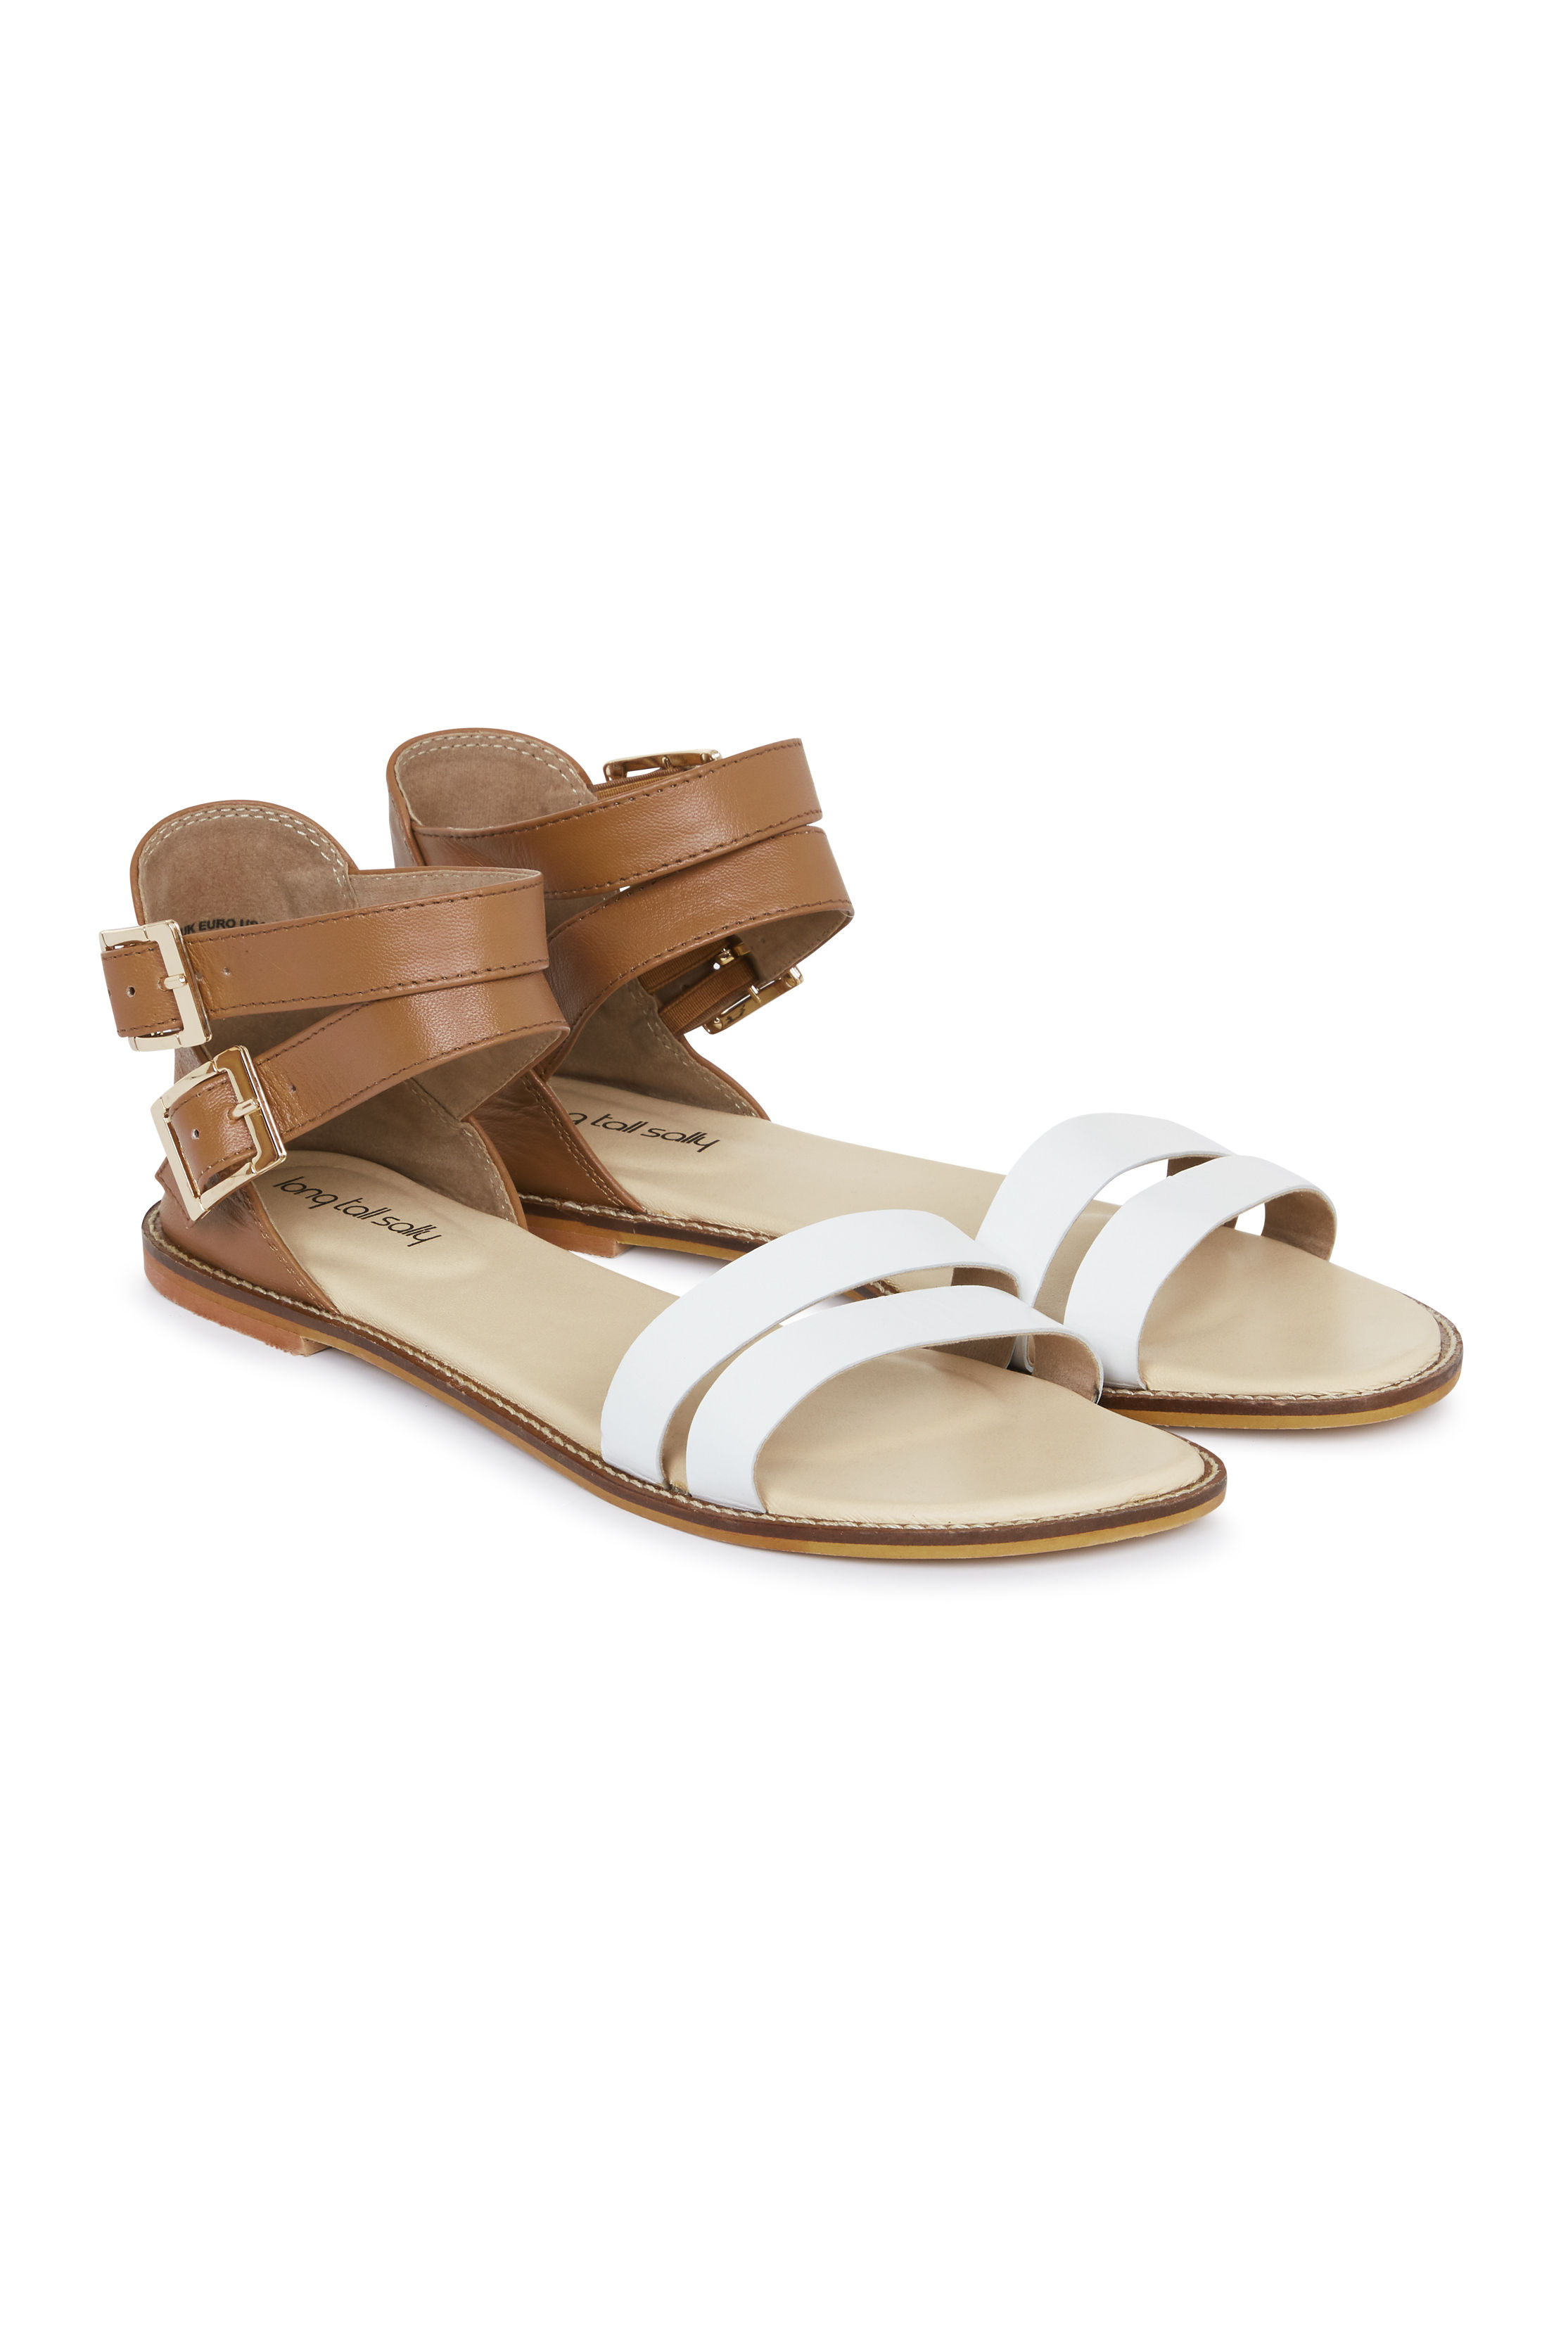 Brown and White Leather Gladiator Sandal